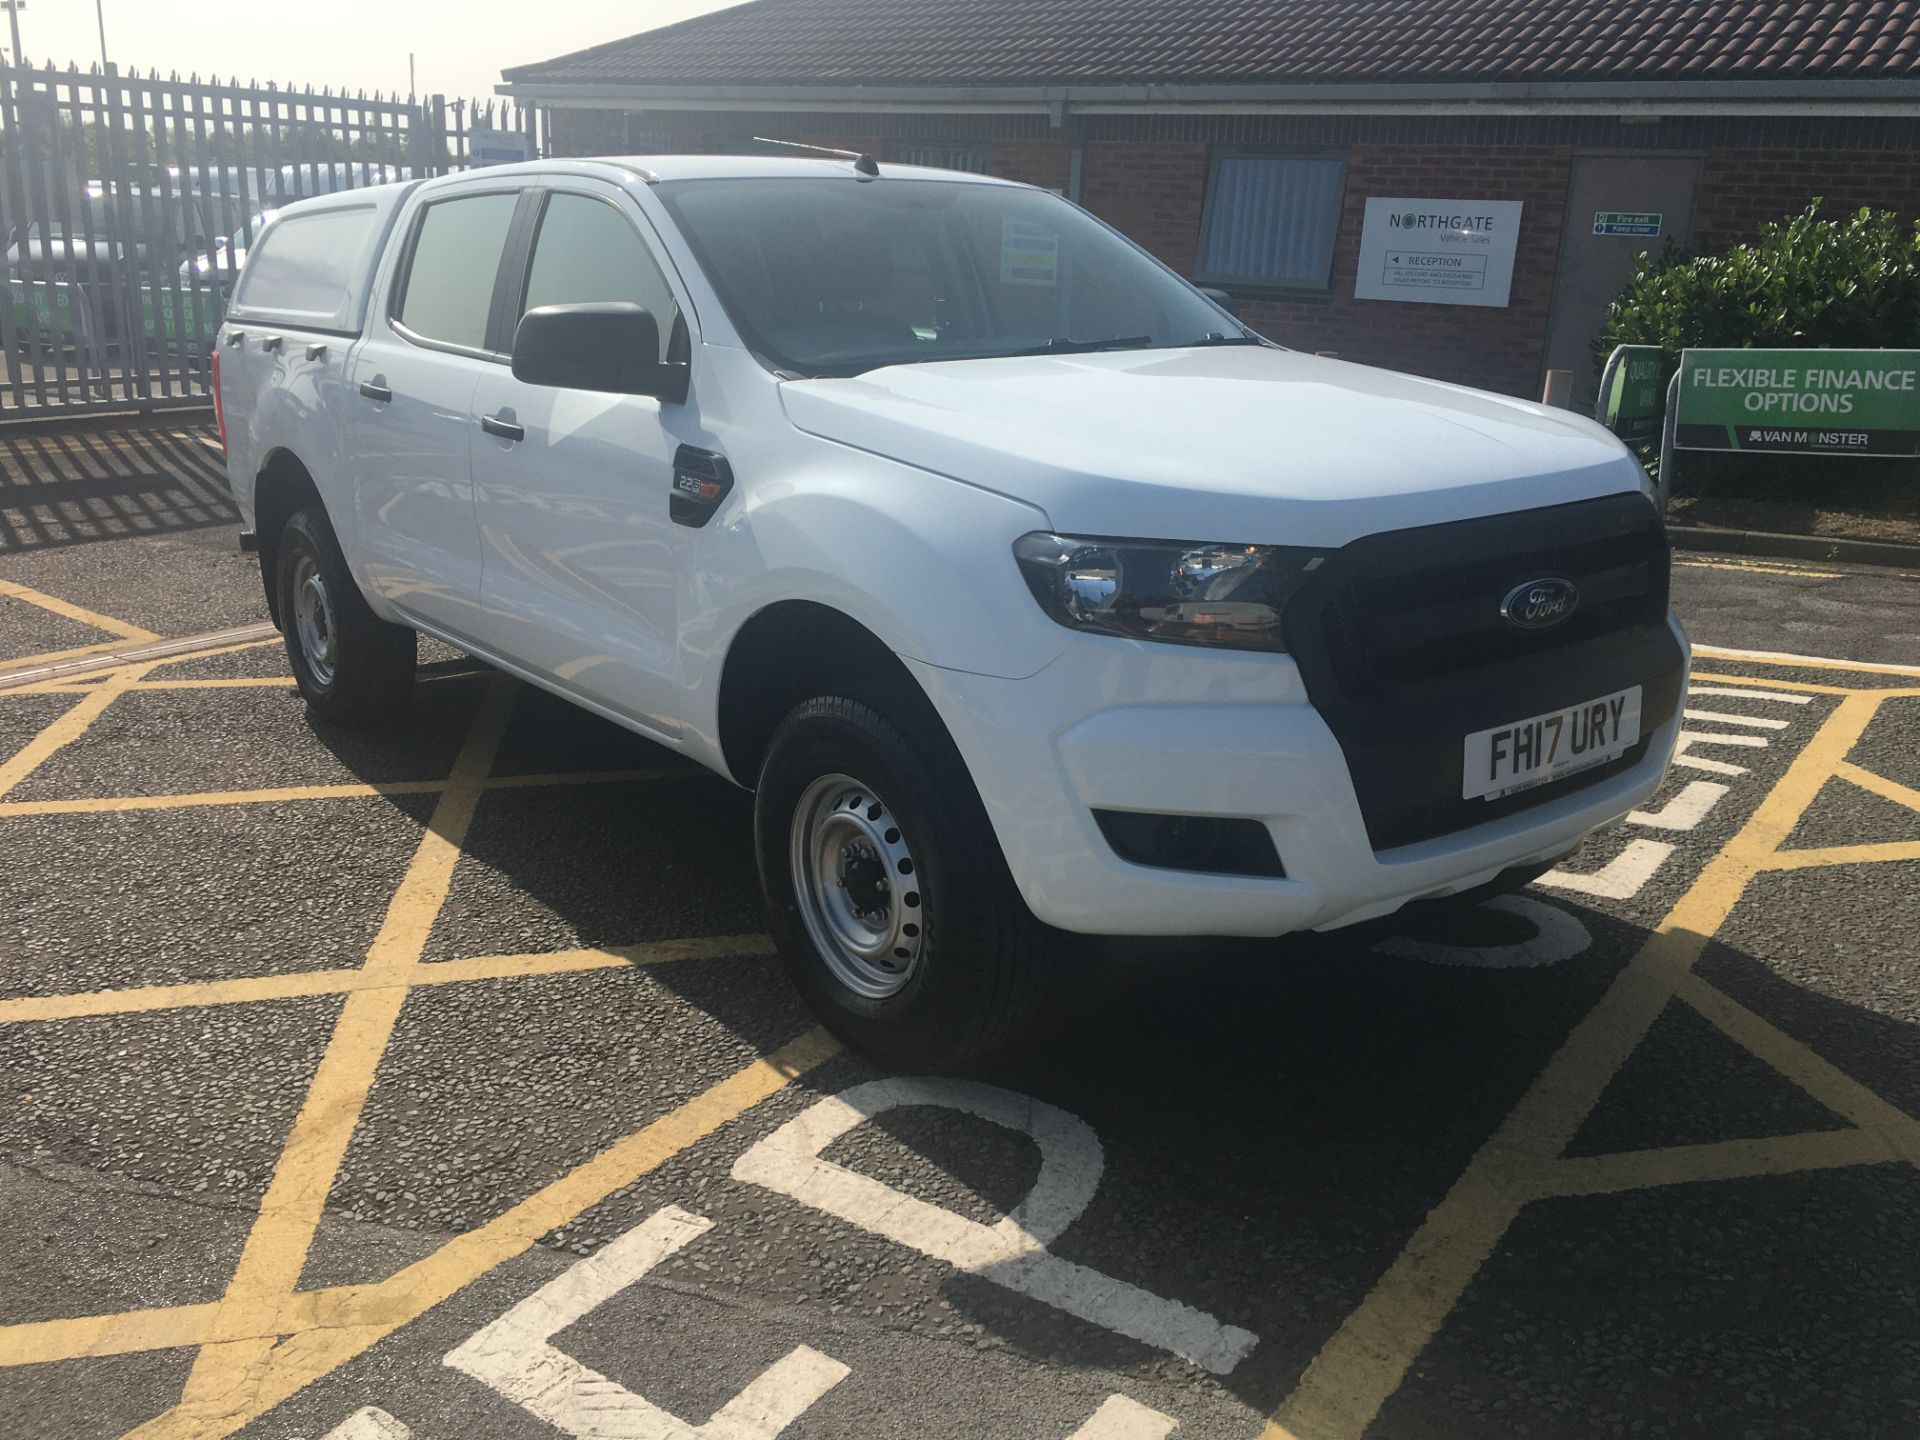 2017 Ford Ranger Pick Up Double Cab Xl 2.2 Tdci (FH17URY)